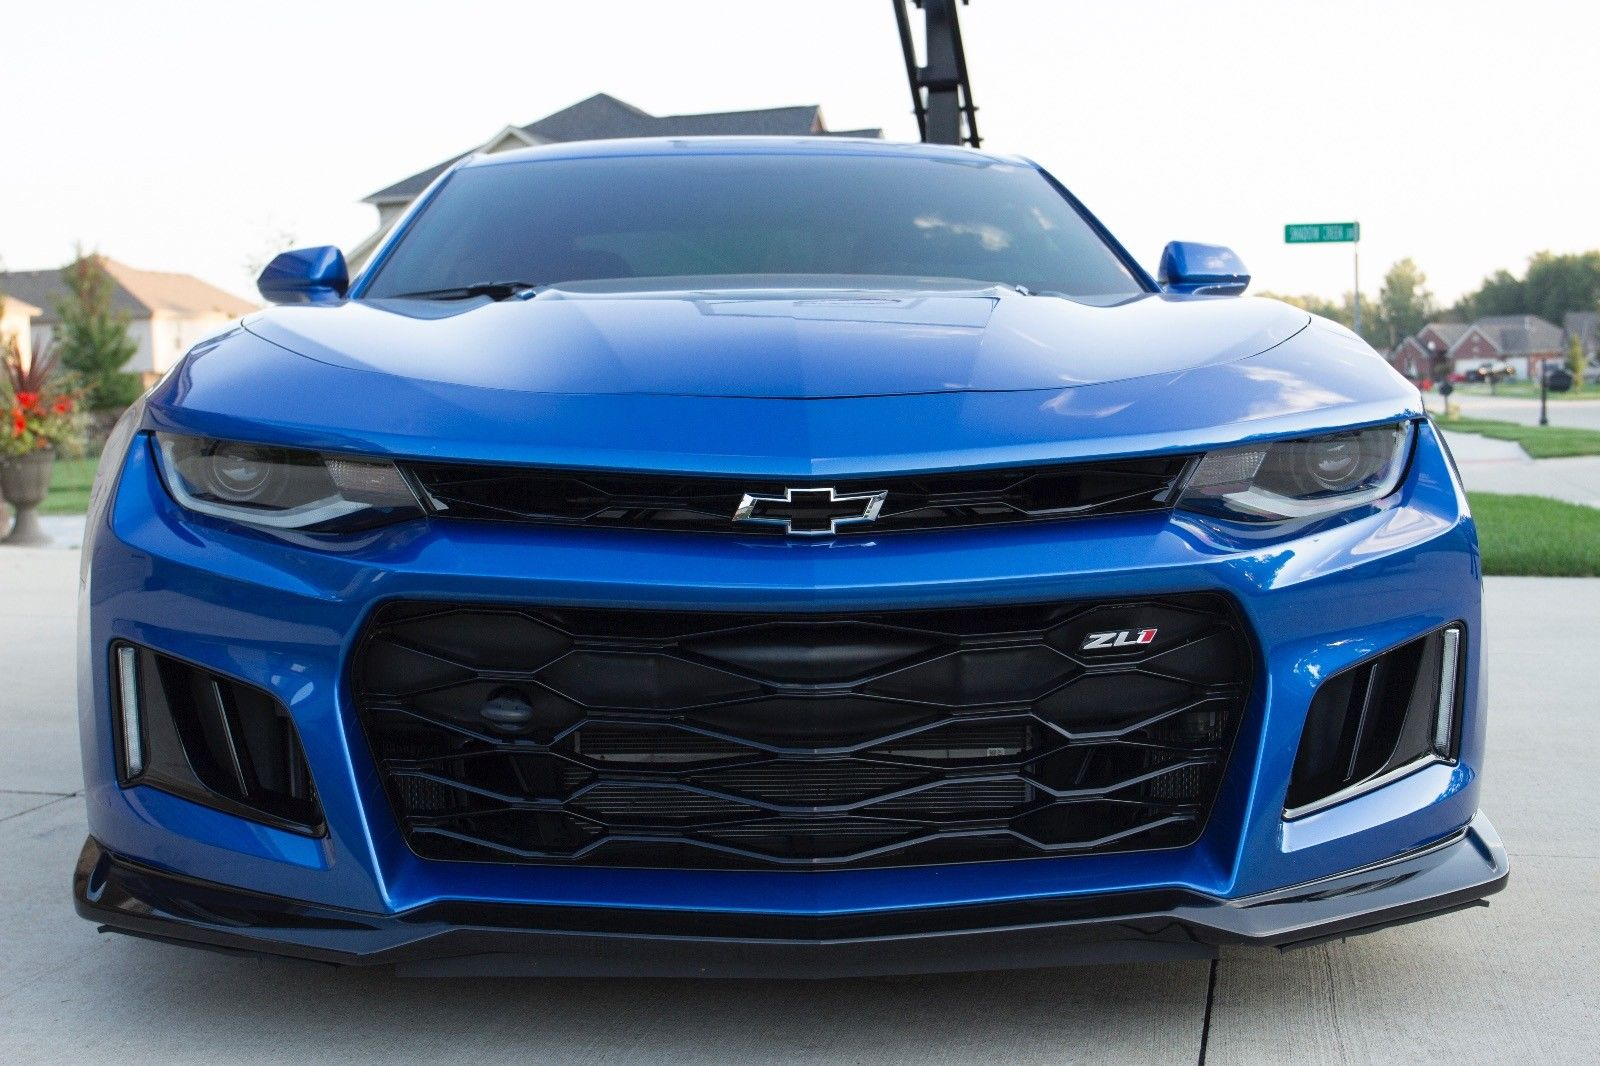 2015 Camaro Zl1 For Sale >> Awesome 2017 Chevrolet Camaro ZL1 2017 CAMARO ZL1 *HYPER BLUE/LOW MILES/1 OWNER* *BEST DEAL ON ...